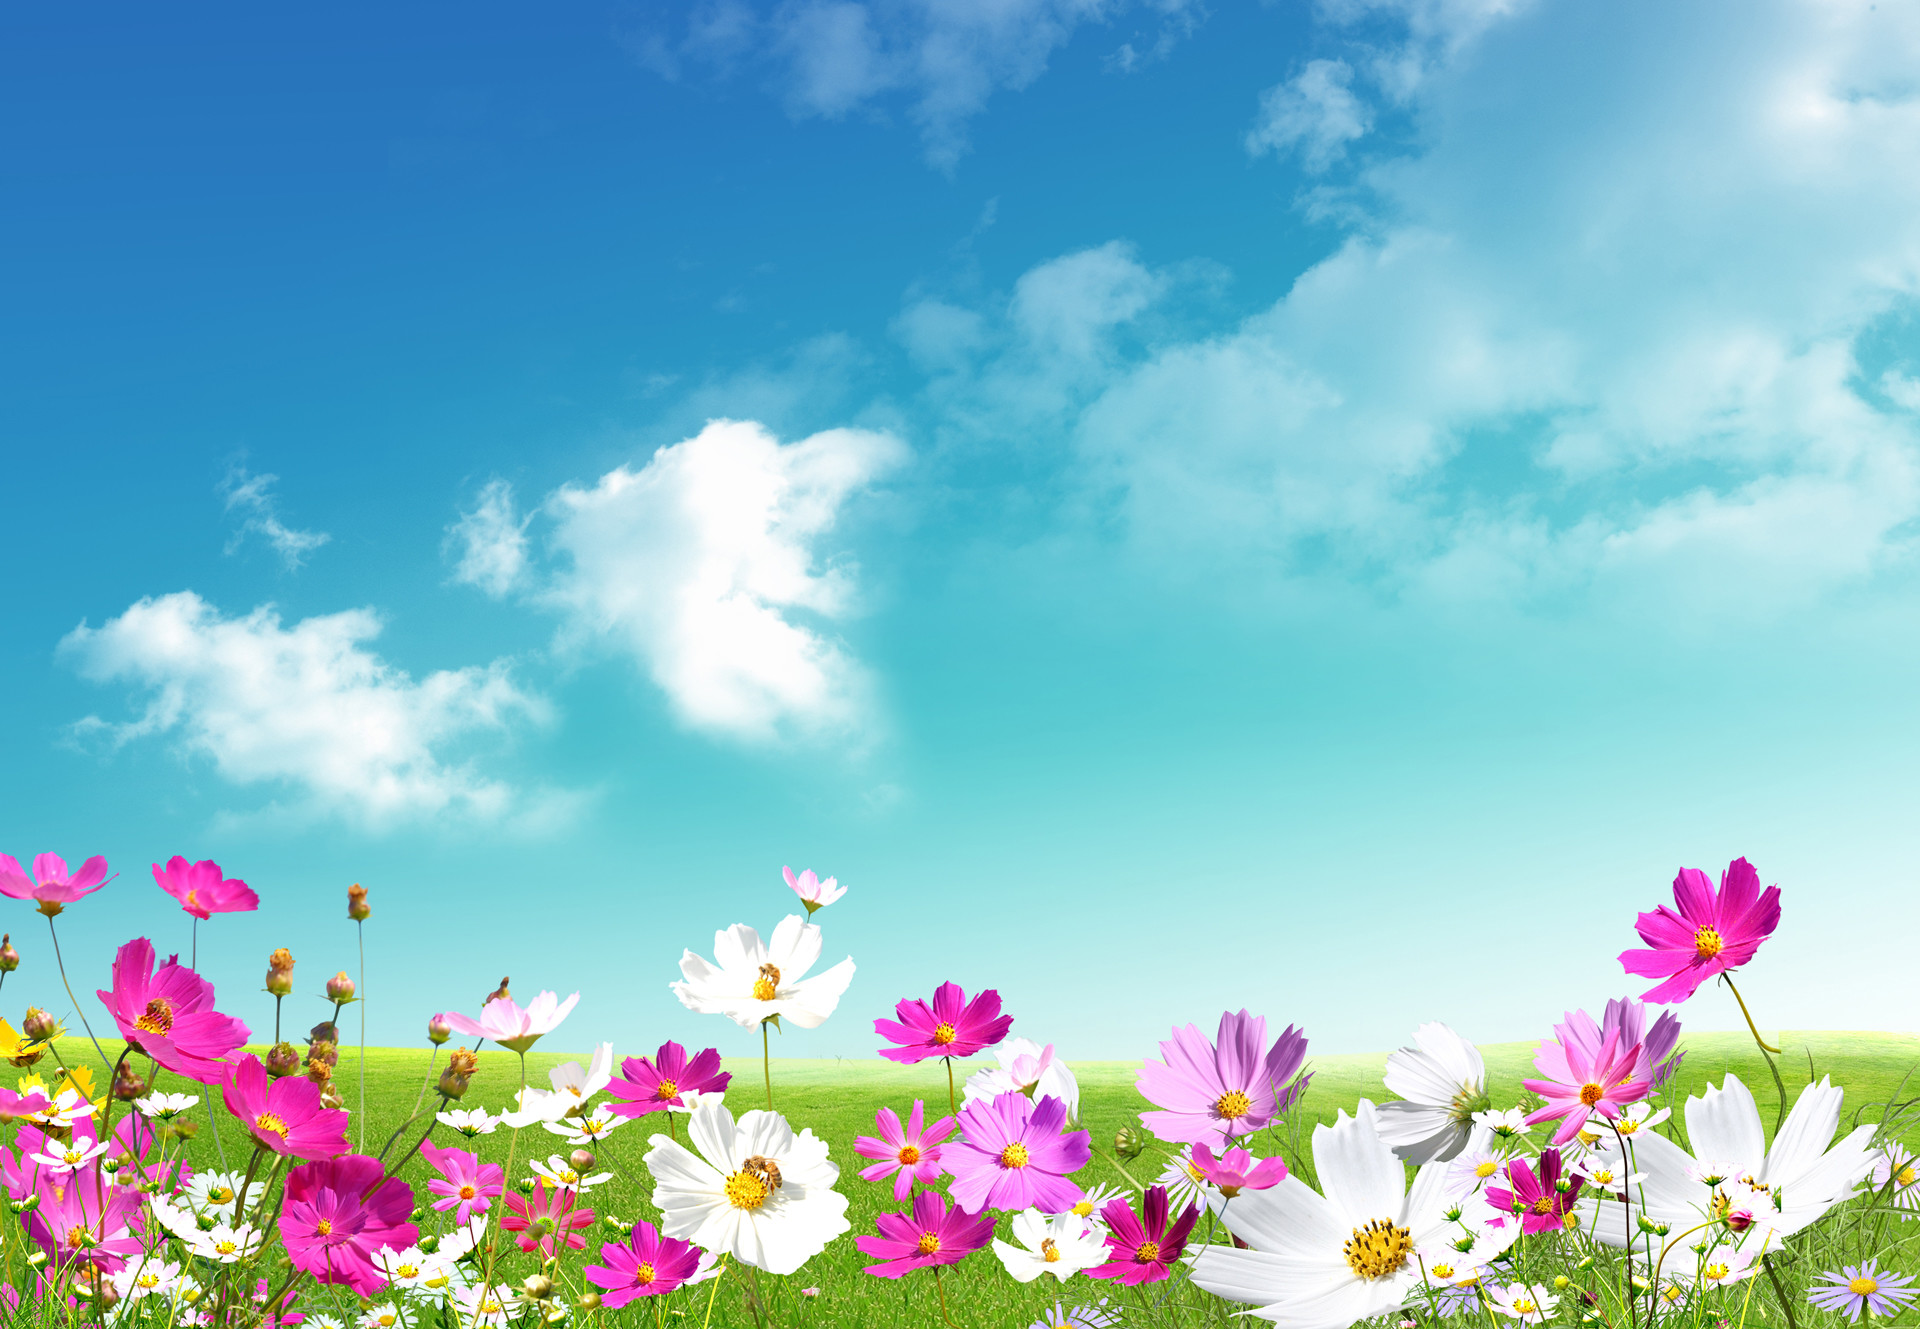 Early Spring Flowers Wallpapers For Desktop Flowers Healthy